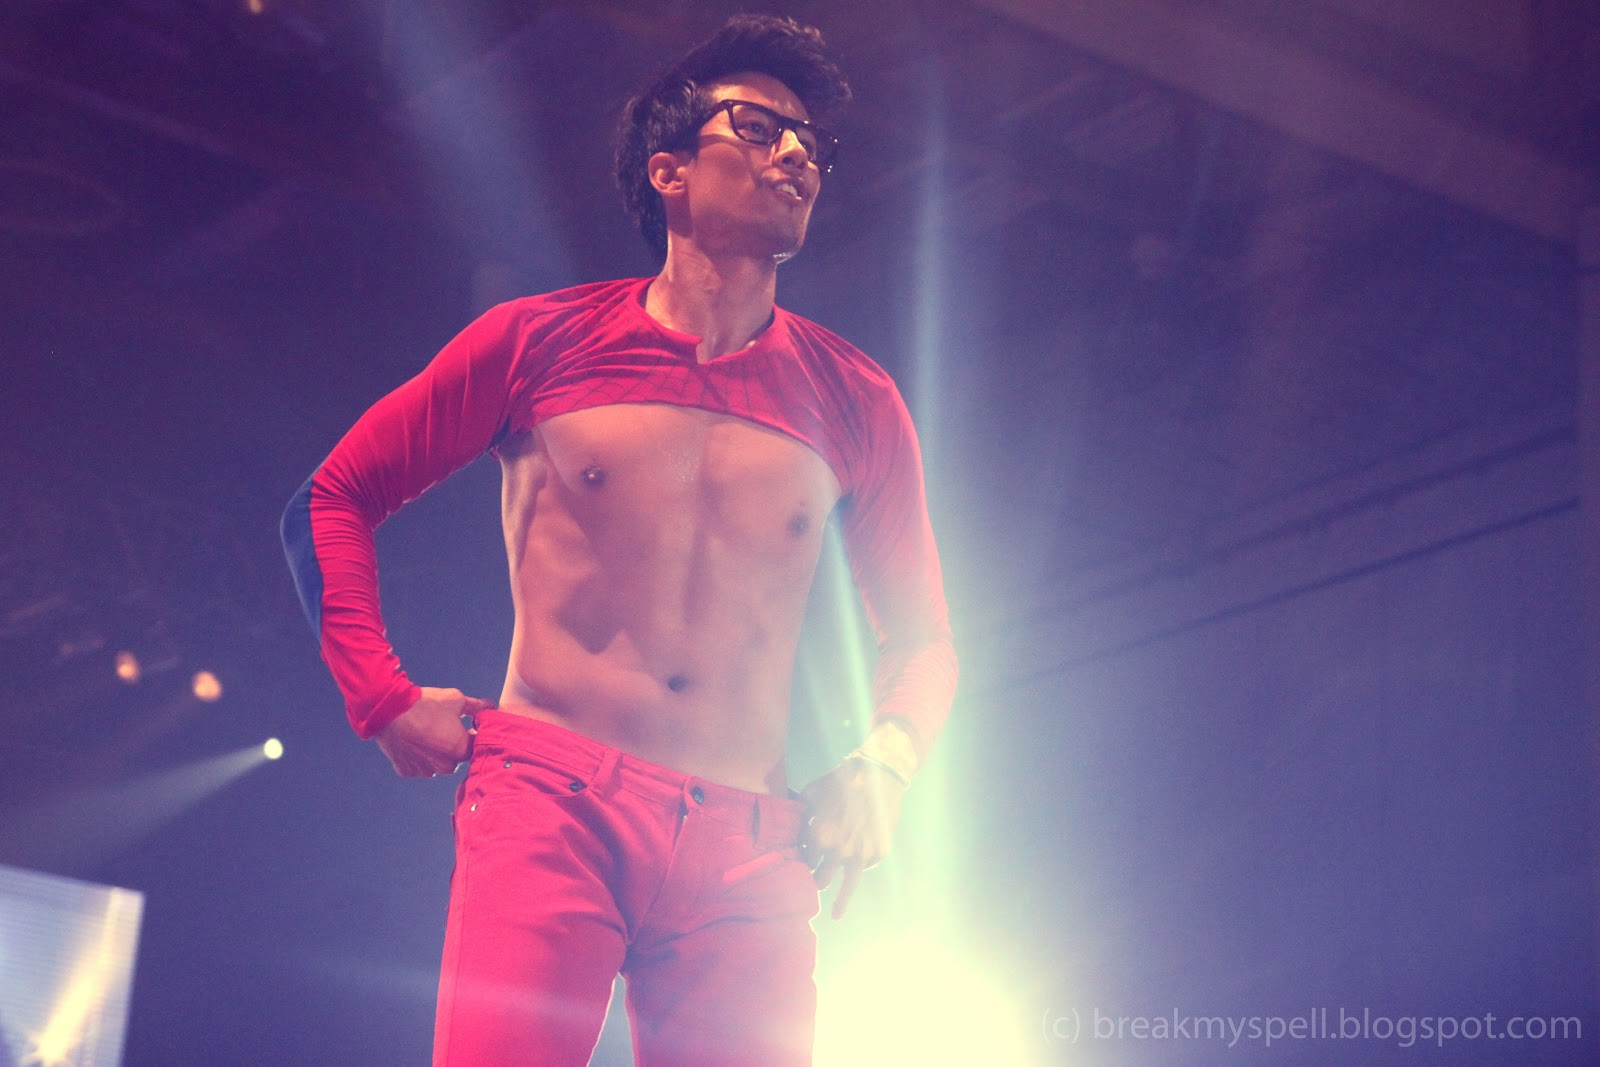 Cosmopolitan Bachelor Bash 2012 hot models bachelors philippines John James Uy